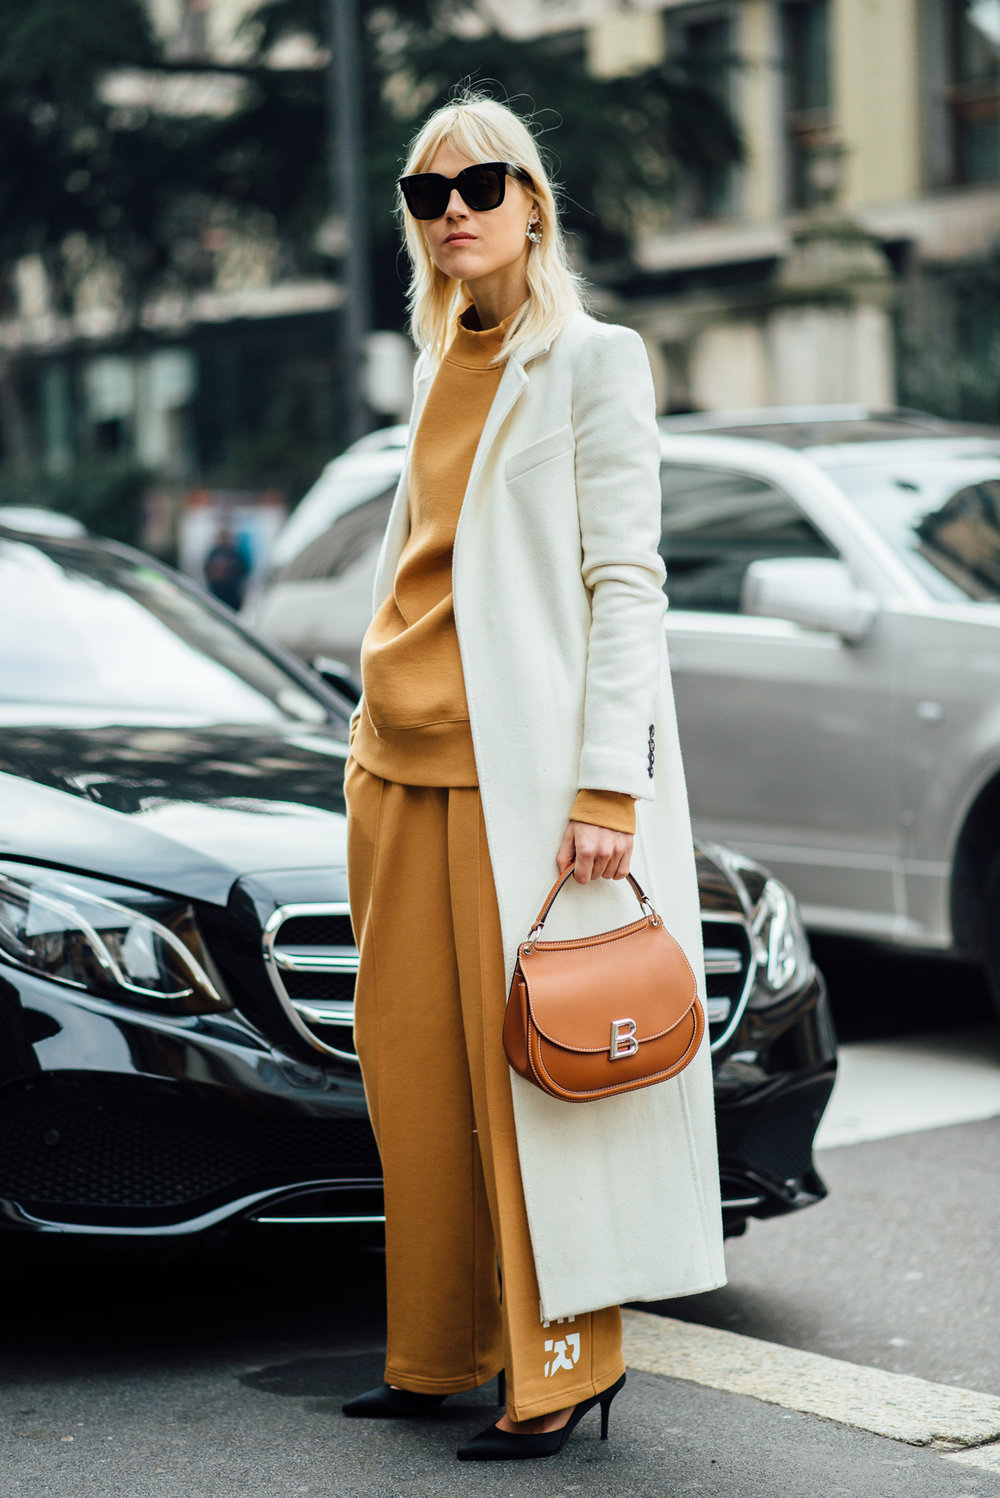 Linda_Tol_outside_MaxMara_LU.jpg